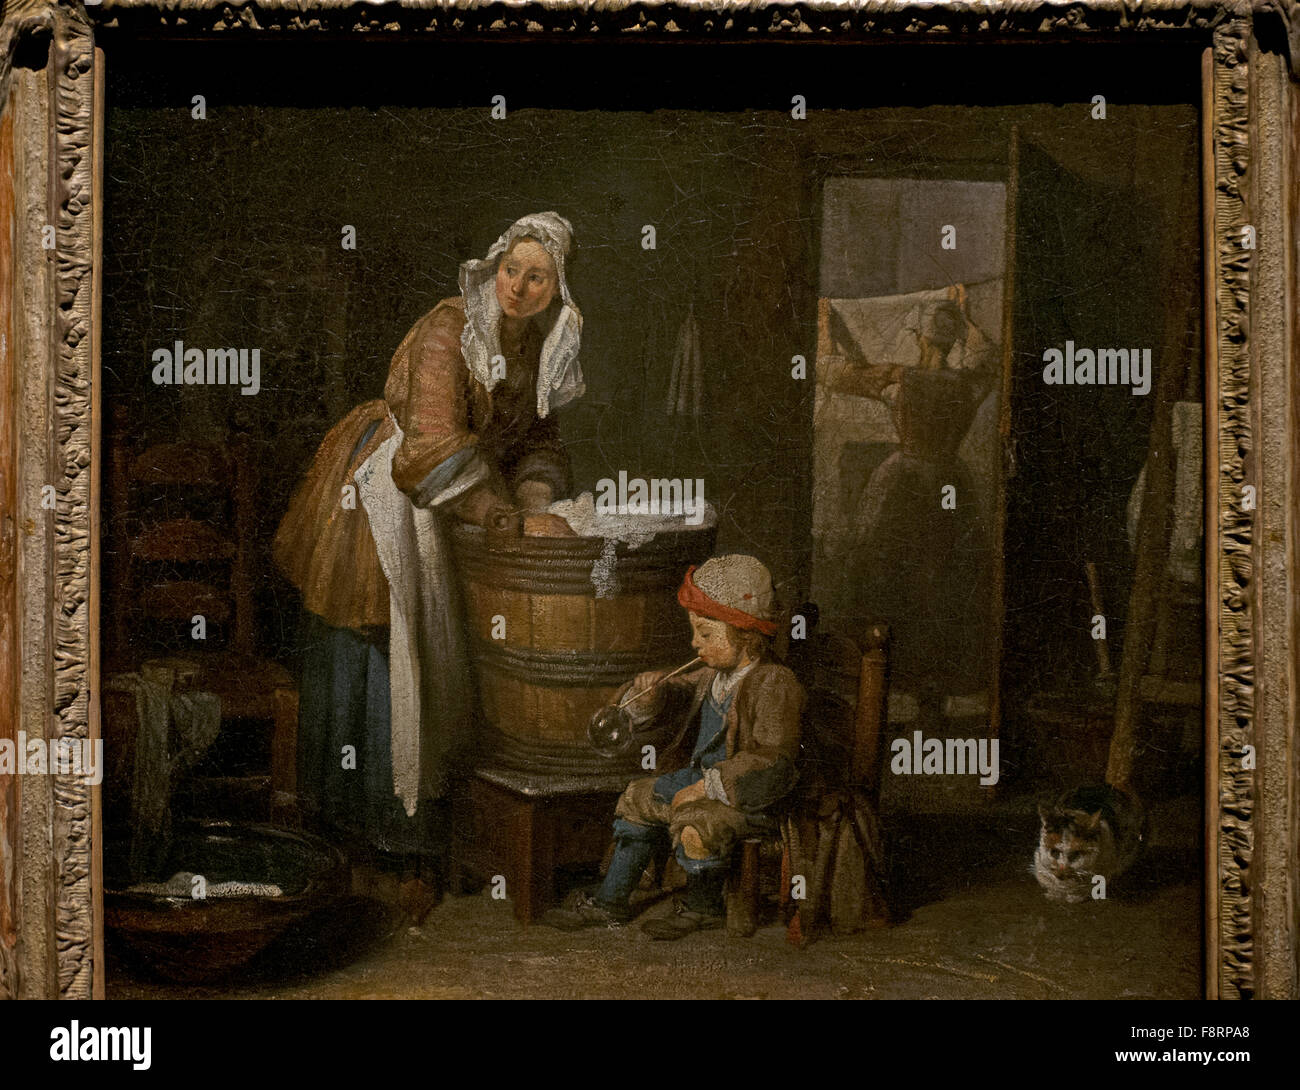 hanging chair cart upholstered with nailhead trim jean simeon chardin (1699-1779). french painter. the washerwoman stock photo: 91491520 - alamy